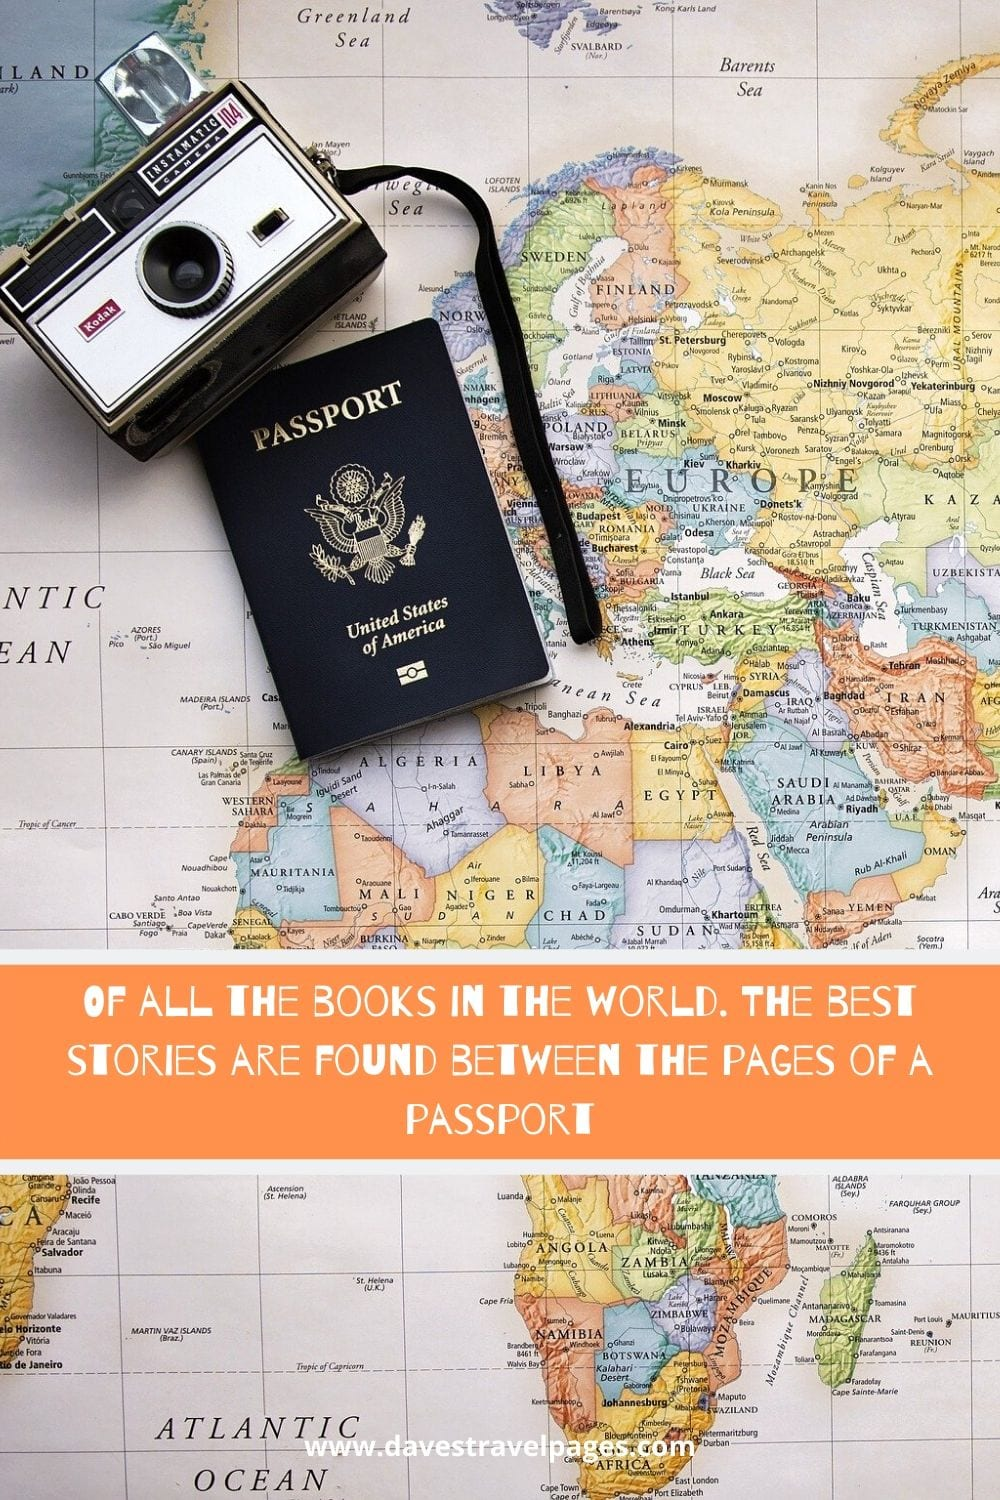 Of all the books in the world. The best stories are found between the pages of a passport